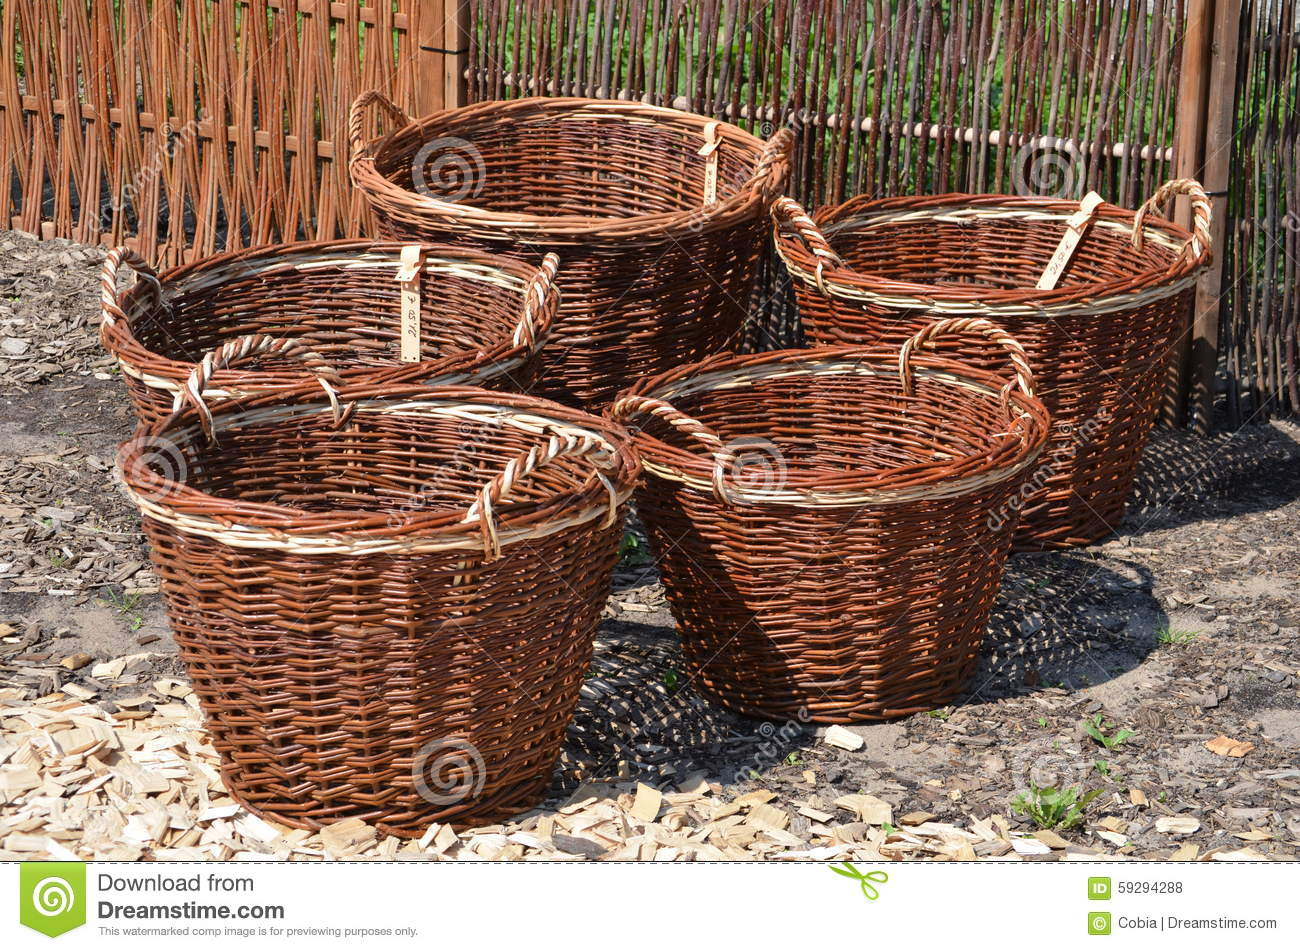 Animal Wicker Hamper Wicker Baskets Stock Photo Image 59294288